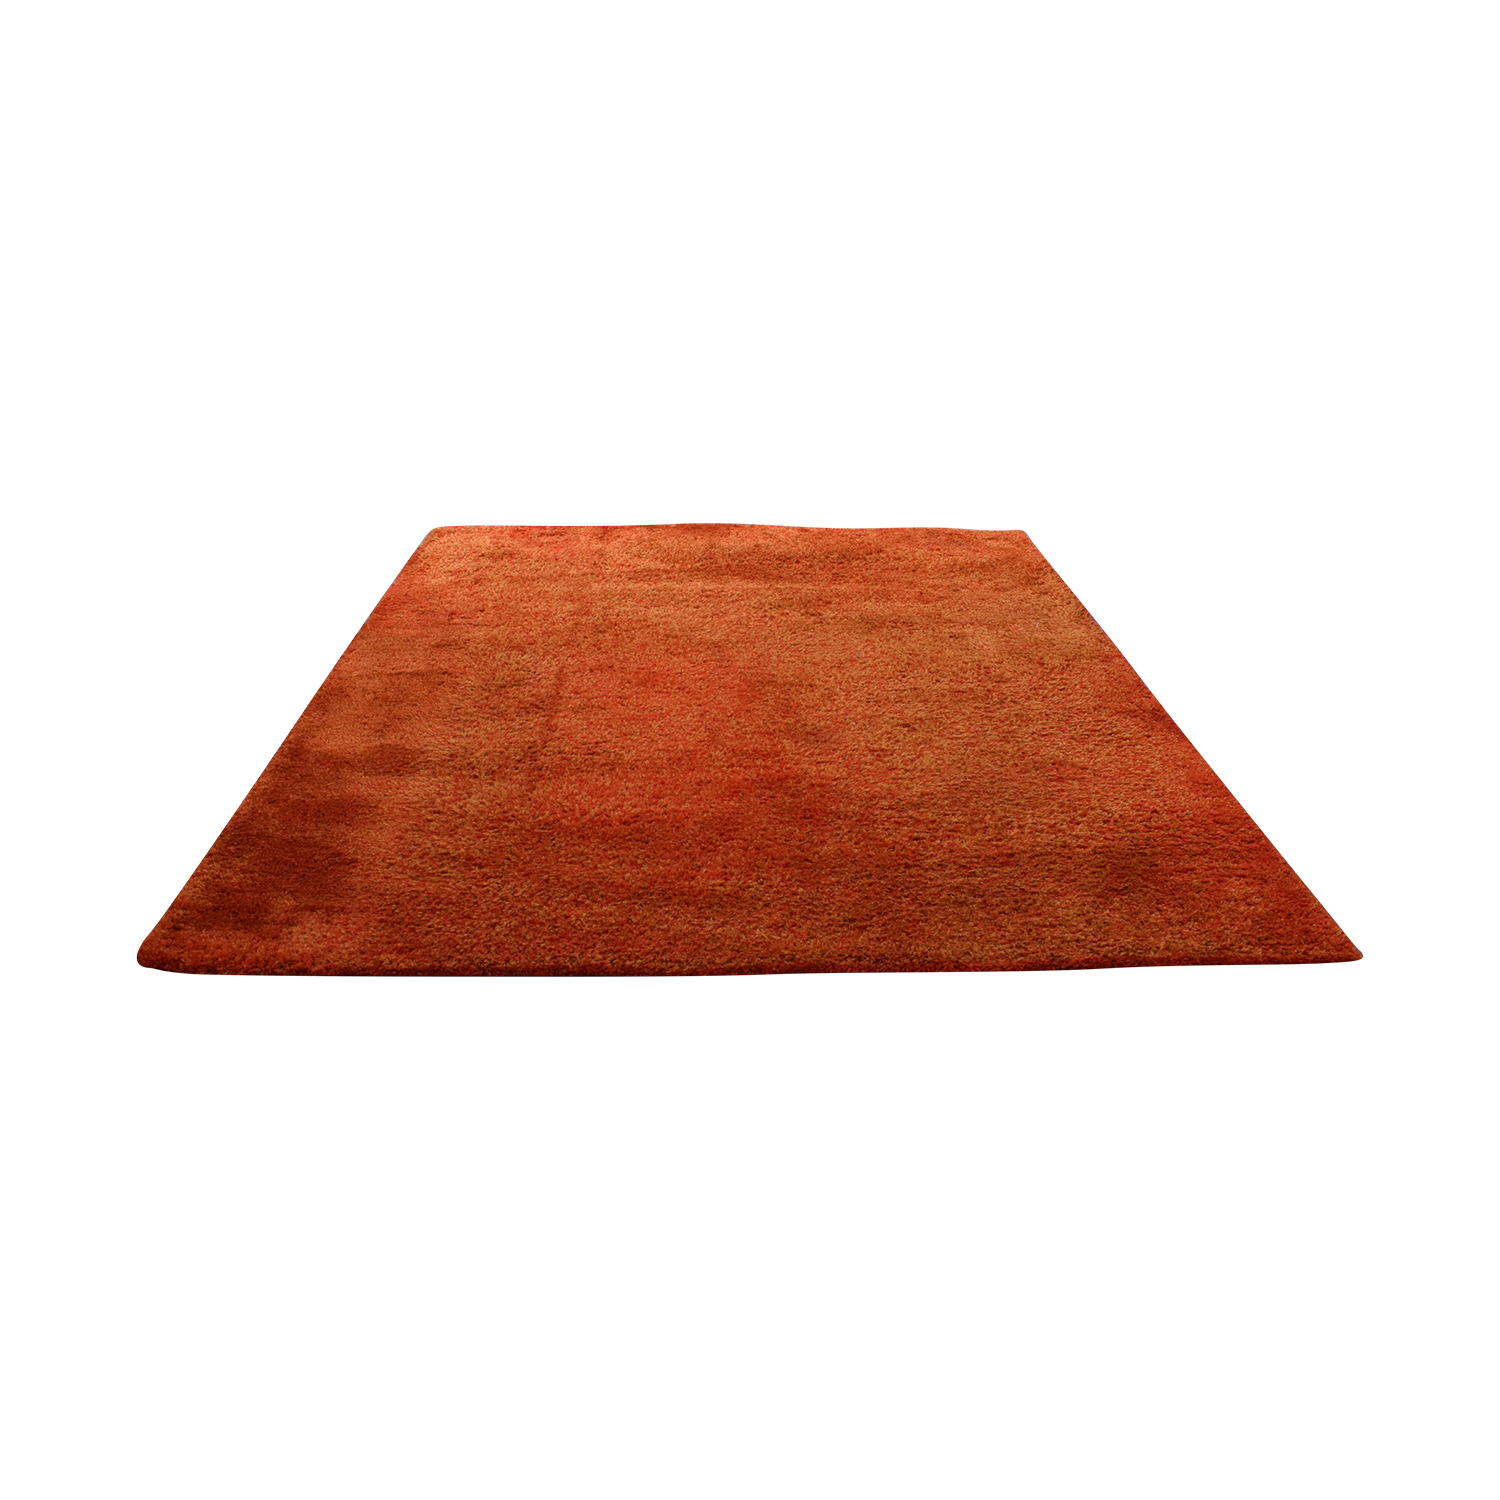 CB2 Roper Shag Orange Rug / Rugs